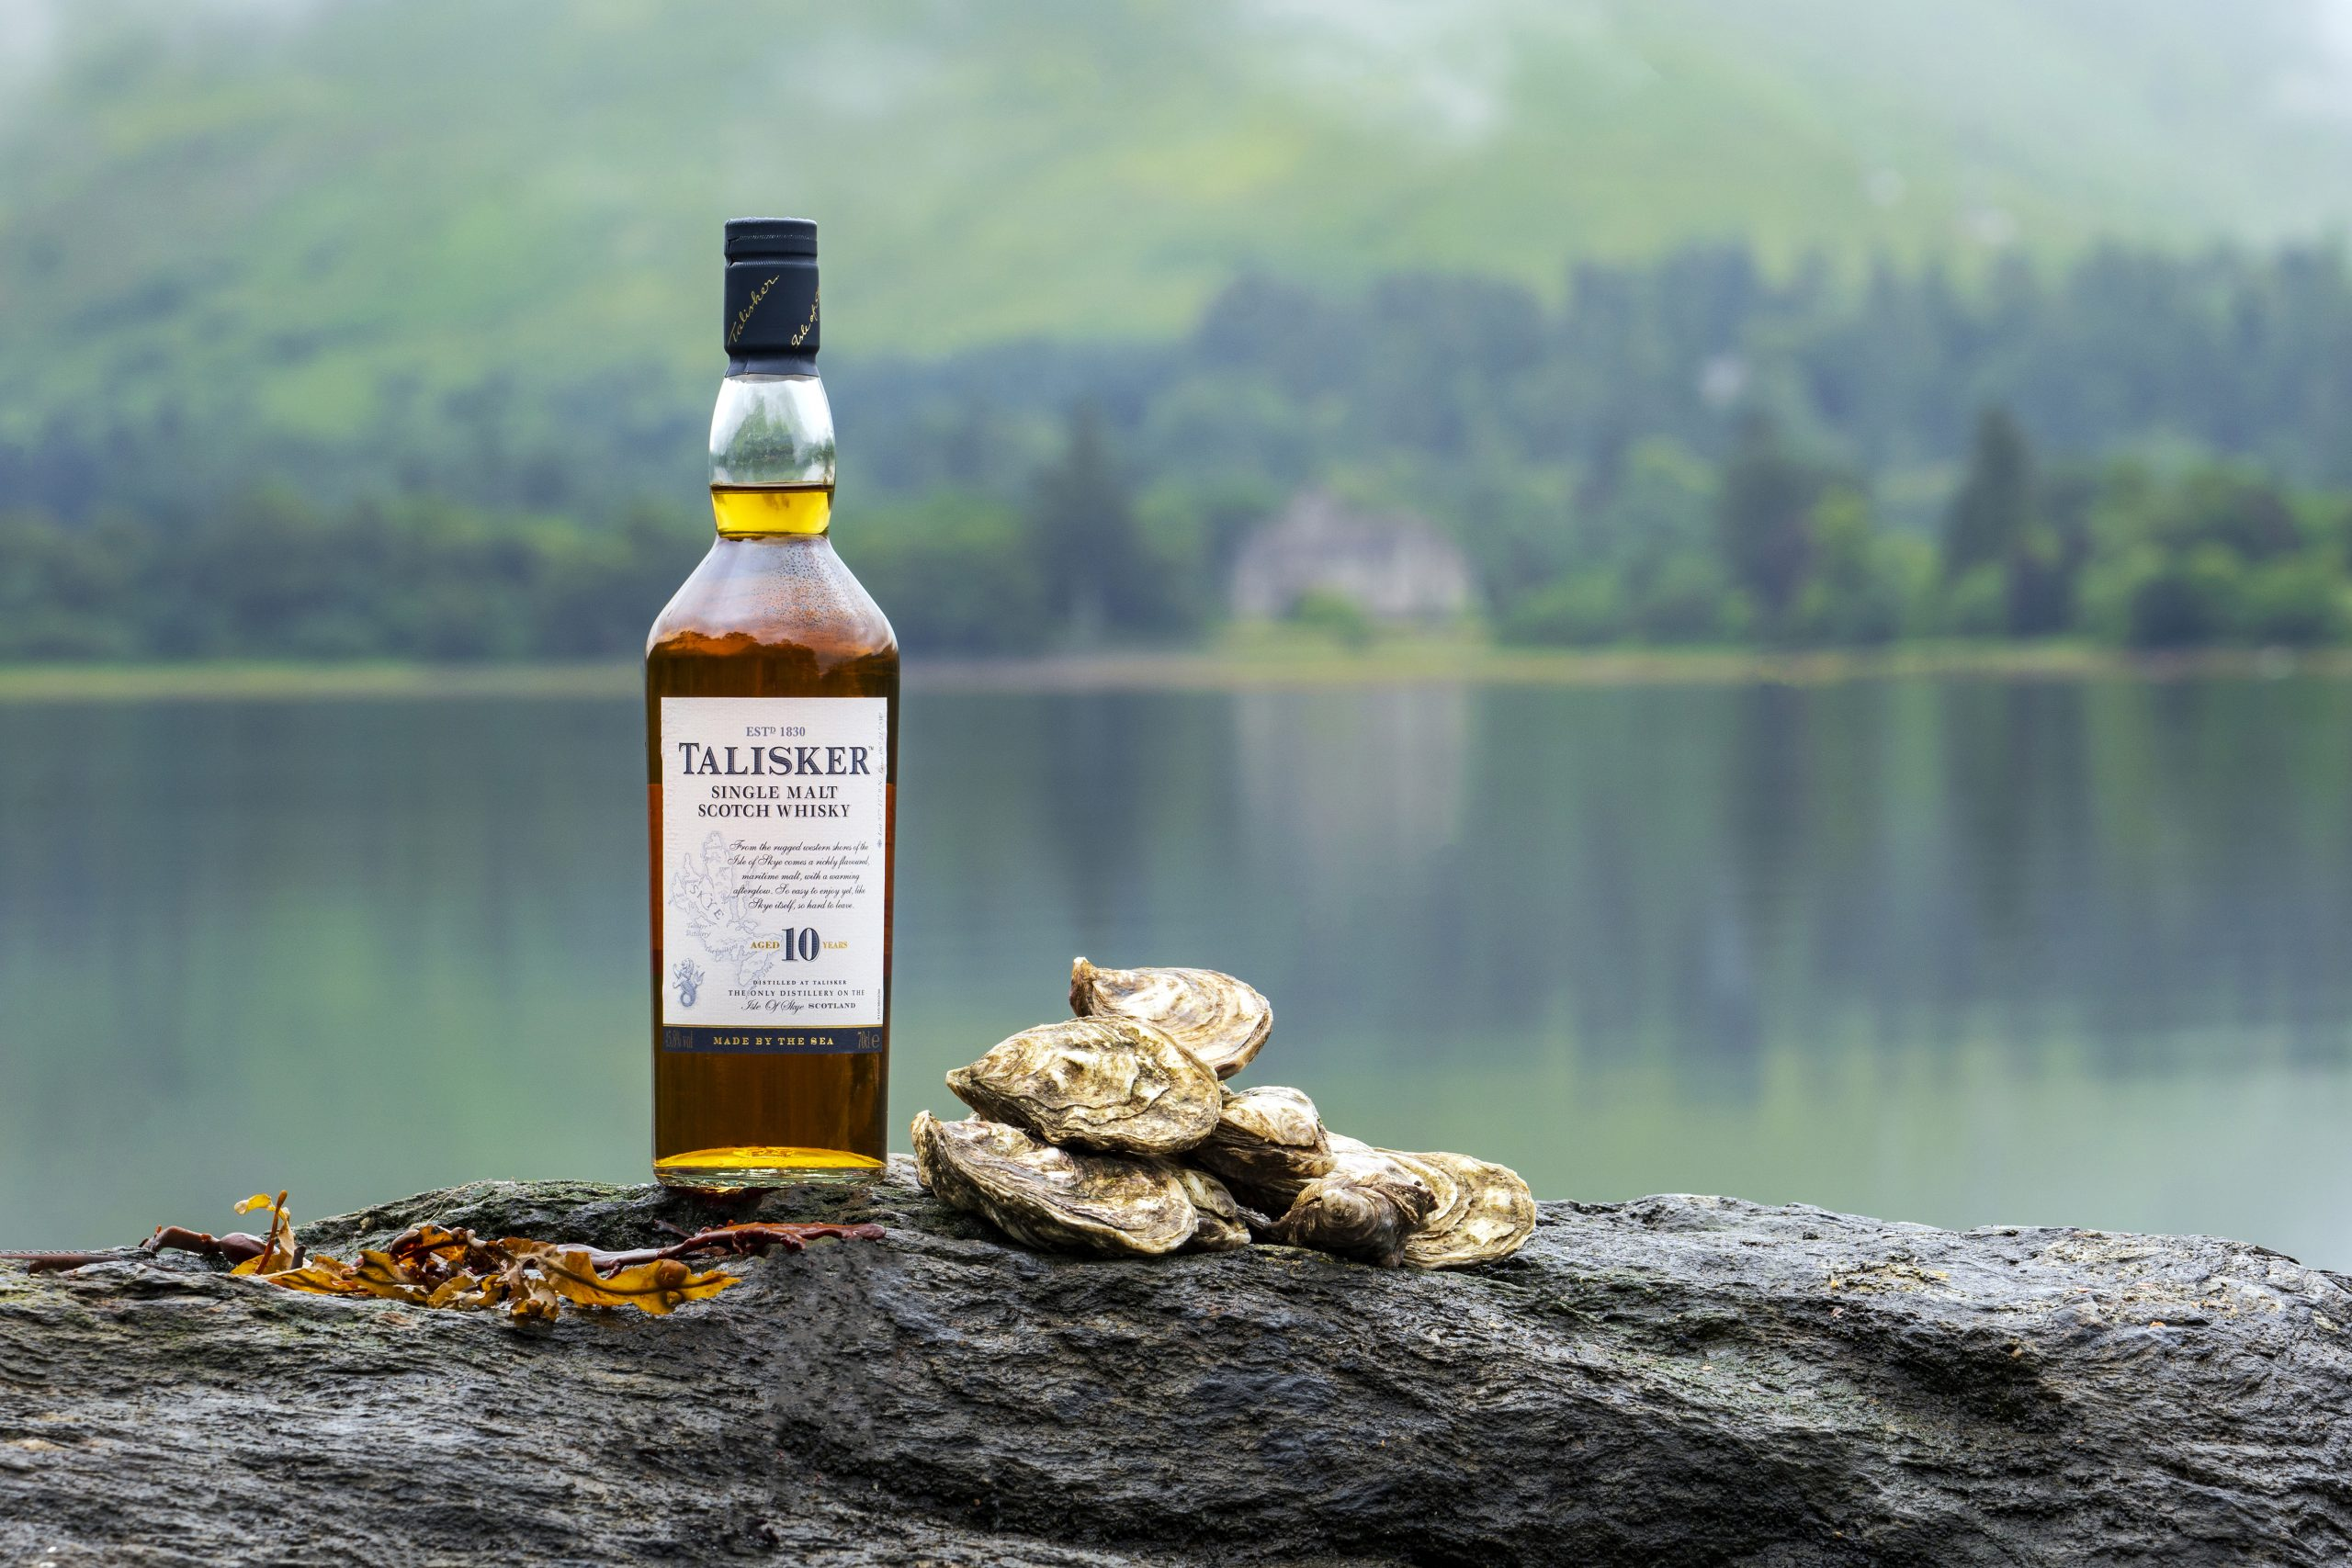 Talisker And Loch Fyne Team Up For Whisky And Oyster Kit photo